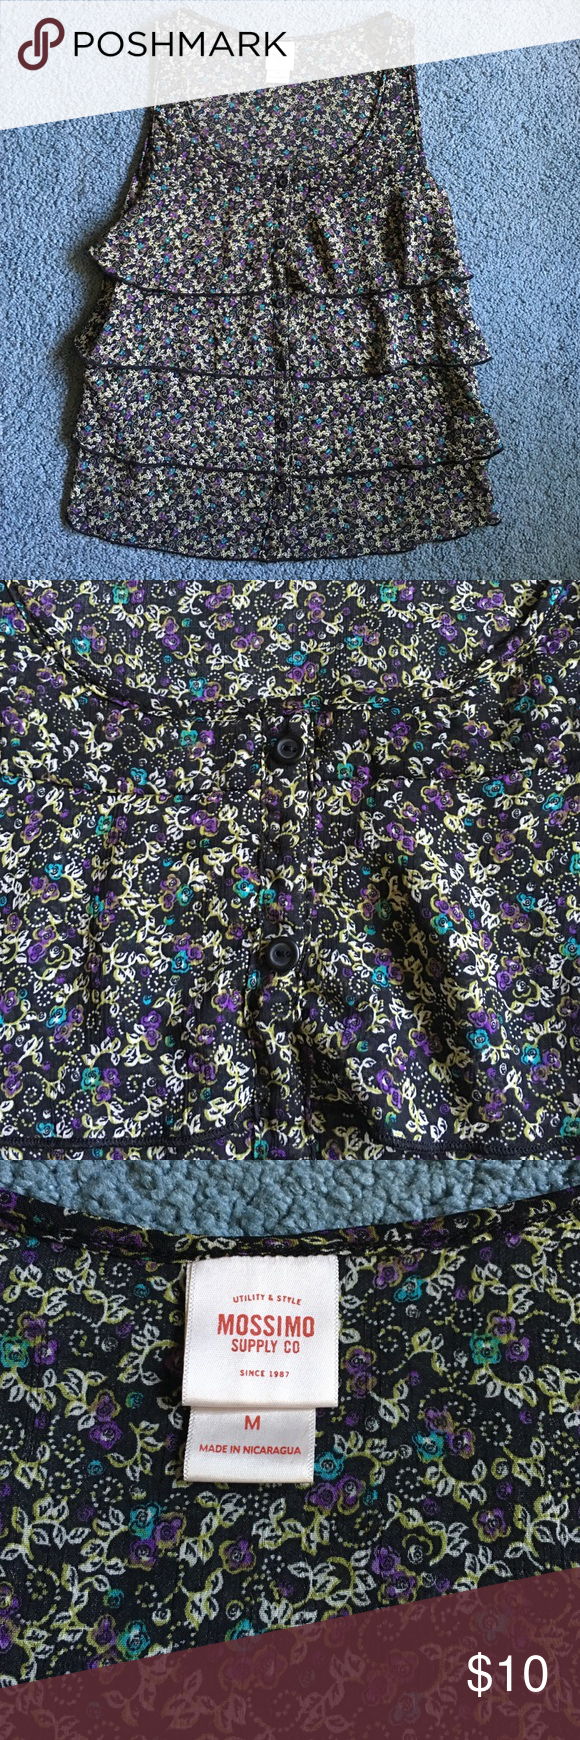 Floral top Sheer material. Never worn. Pleated. Sits right about pant line. Mossimo Supply Co Tops Crop Tops